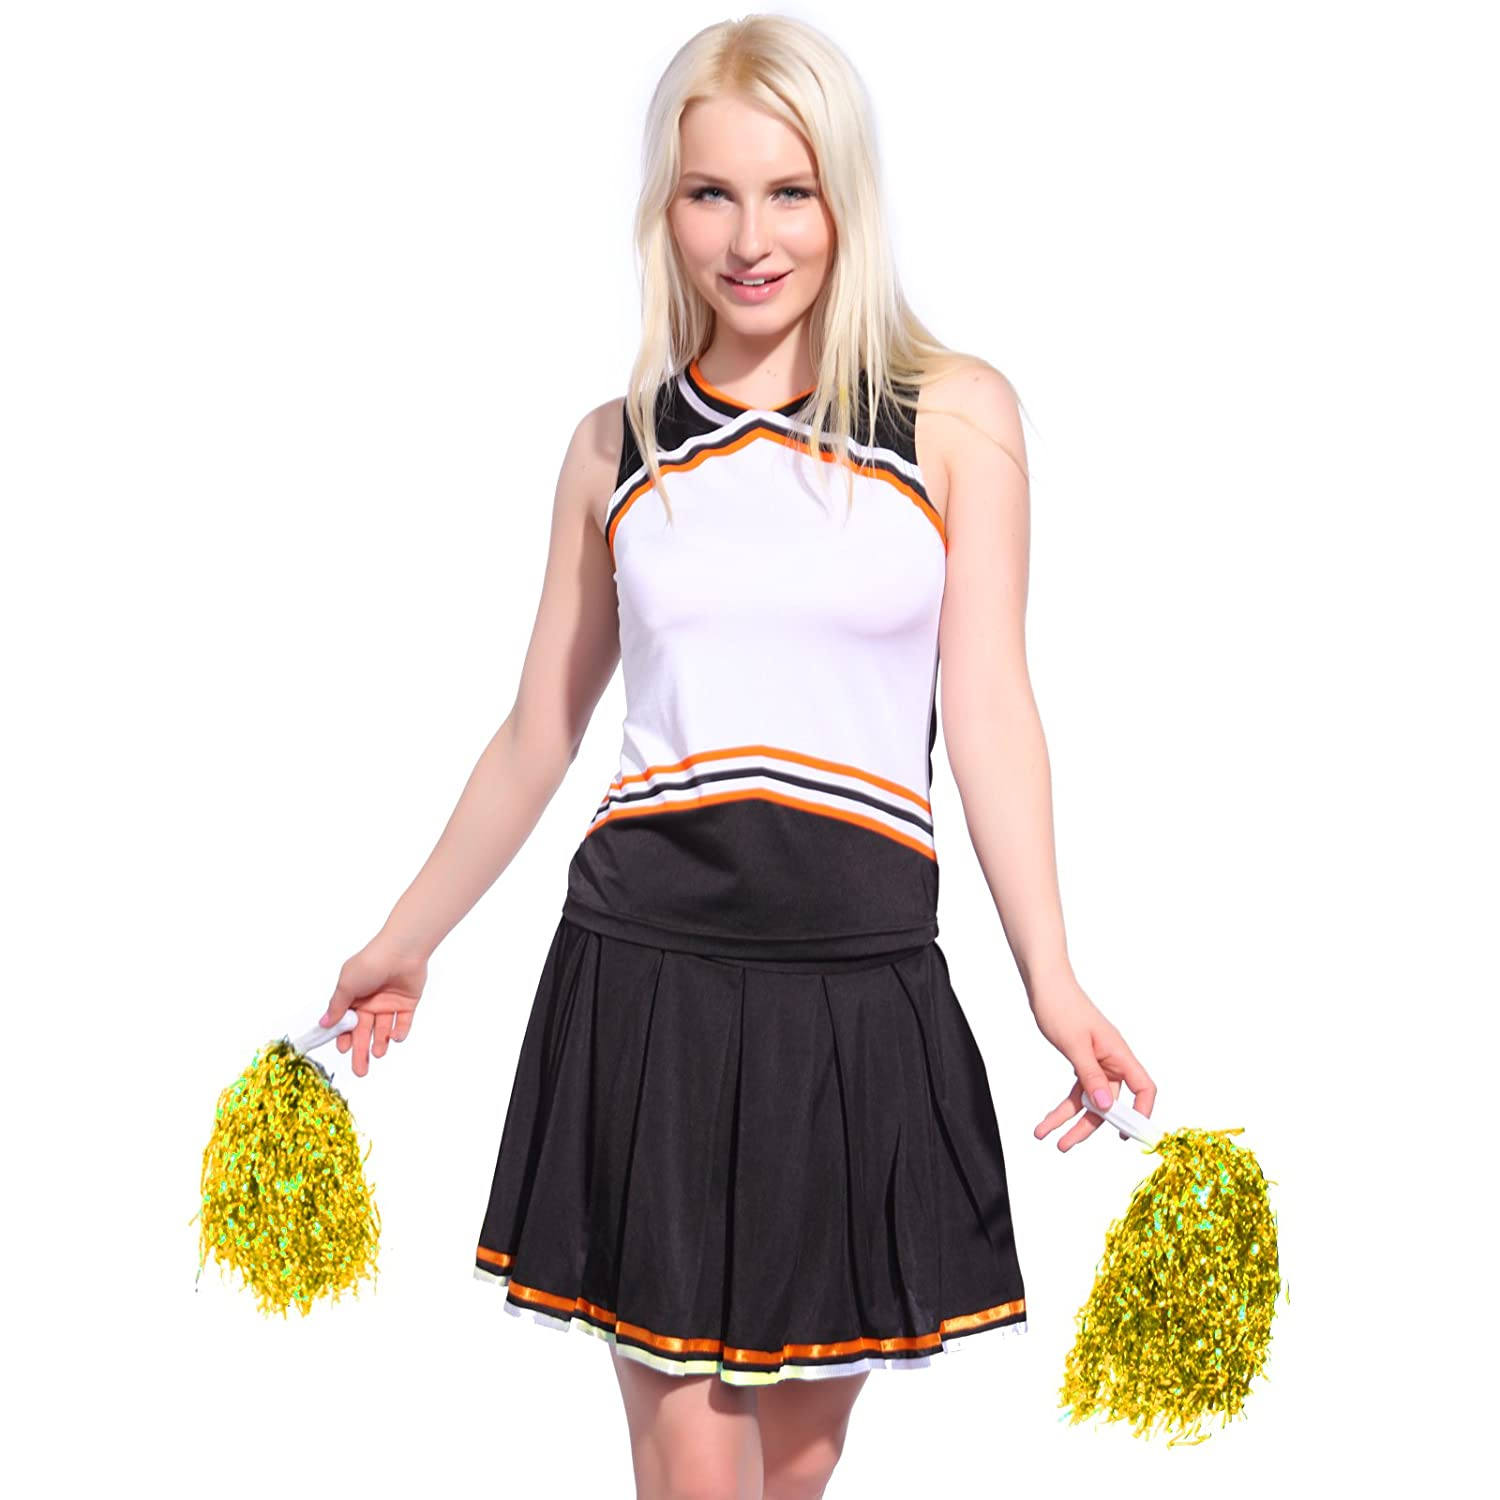 Iron on Peint by Self Blank Cheer Girl 2 pcs Cheerleader Costume Outfit